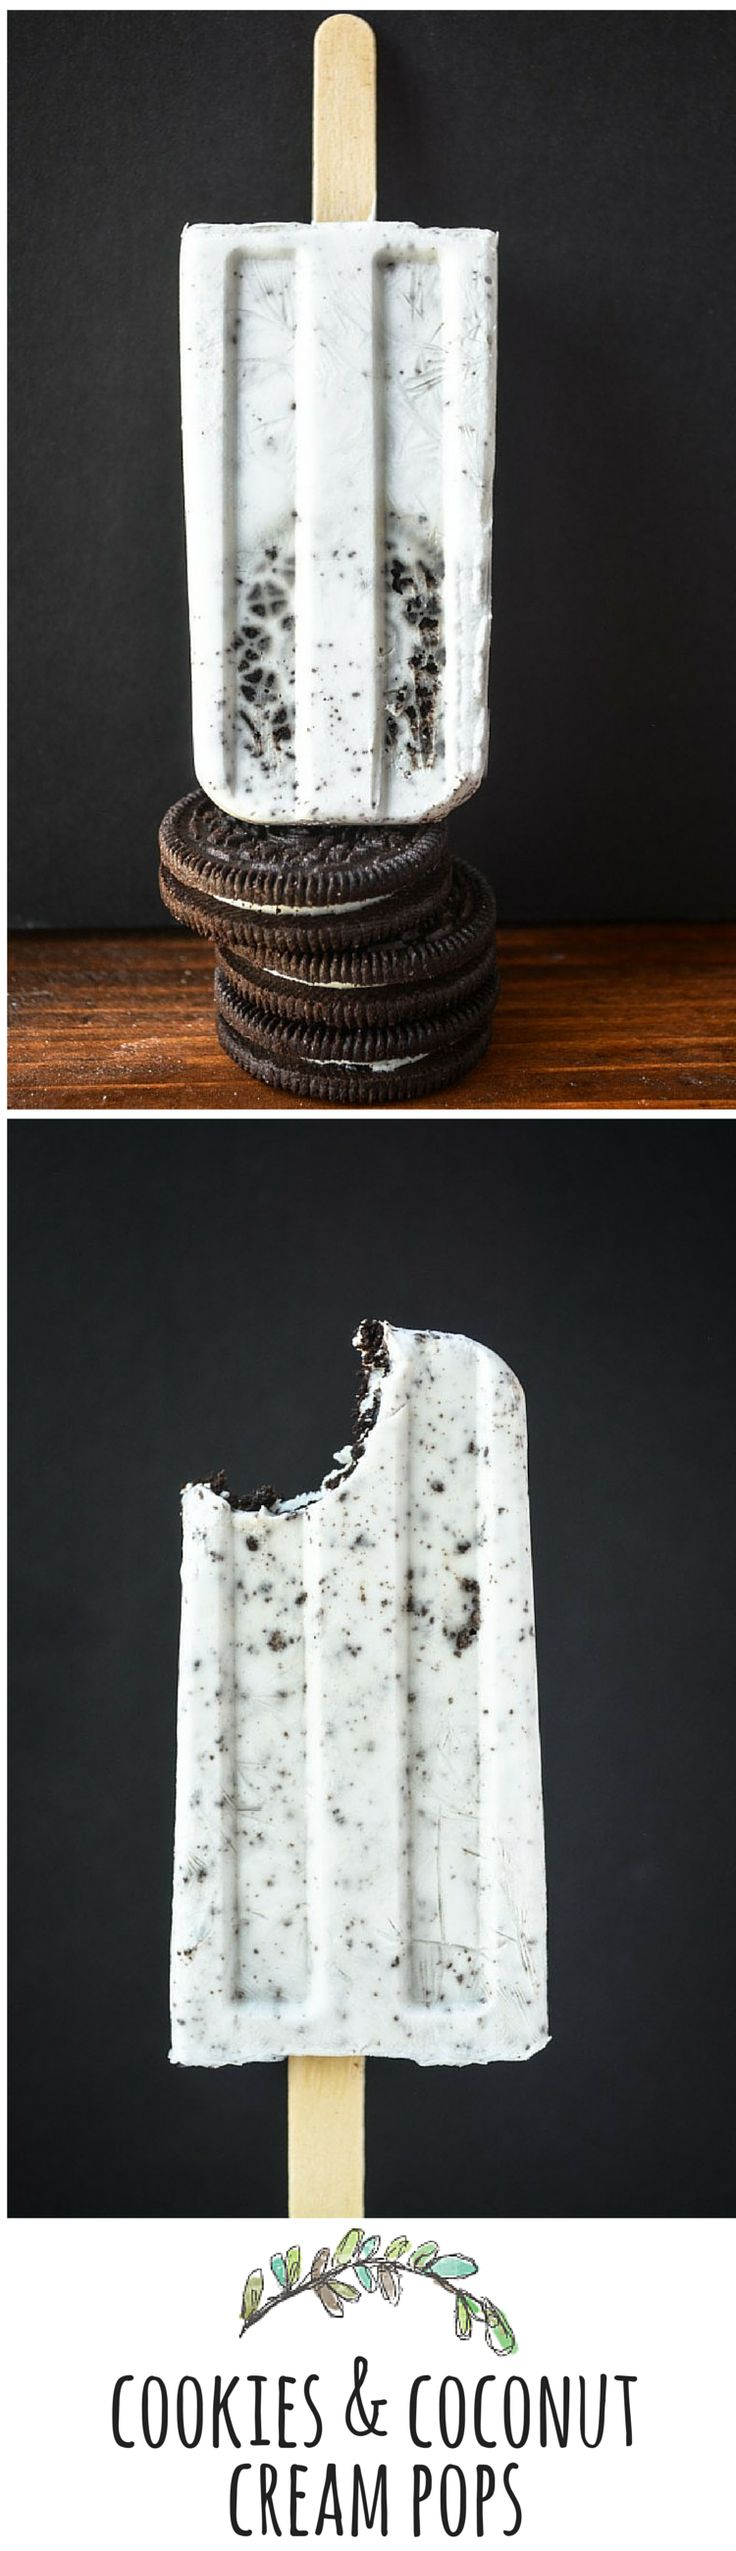 Creamy, dreamy, Oreo cookies blended with healthy coconut milk for a fabulously refreshing popsicle.